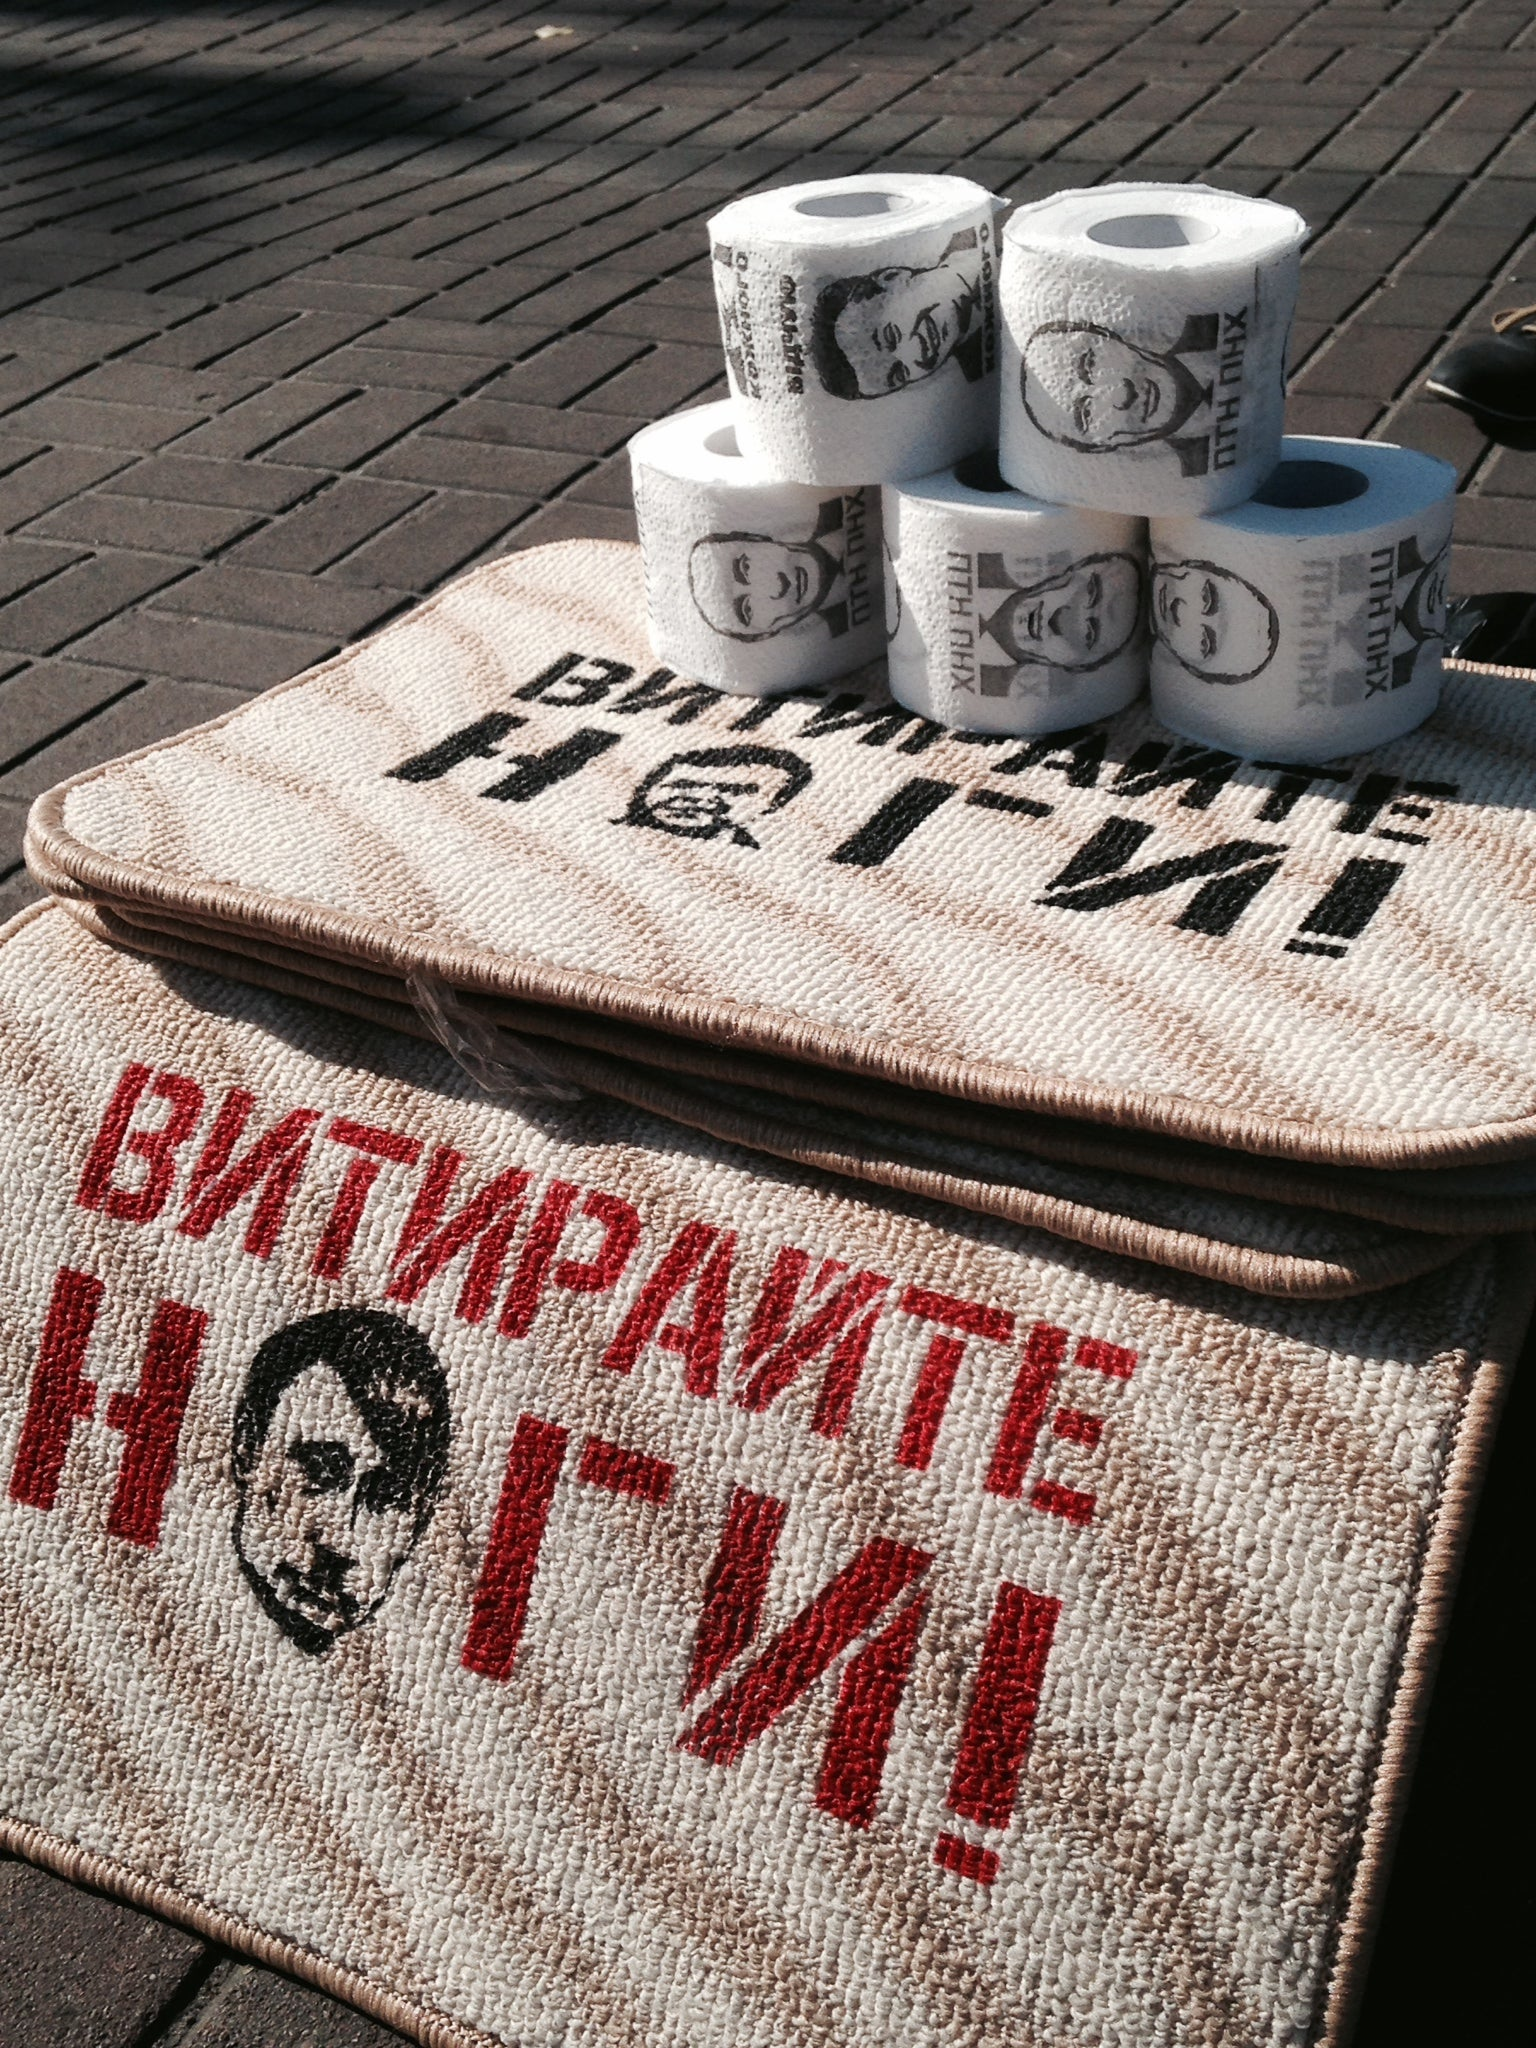 Depictions of Russian President Vladimir Putin for sale on Kyiv's Independence Square. (Photo: Nolan Peterson/The Daily Signal)